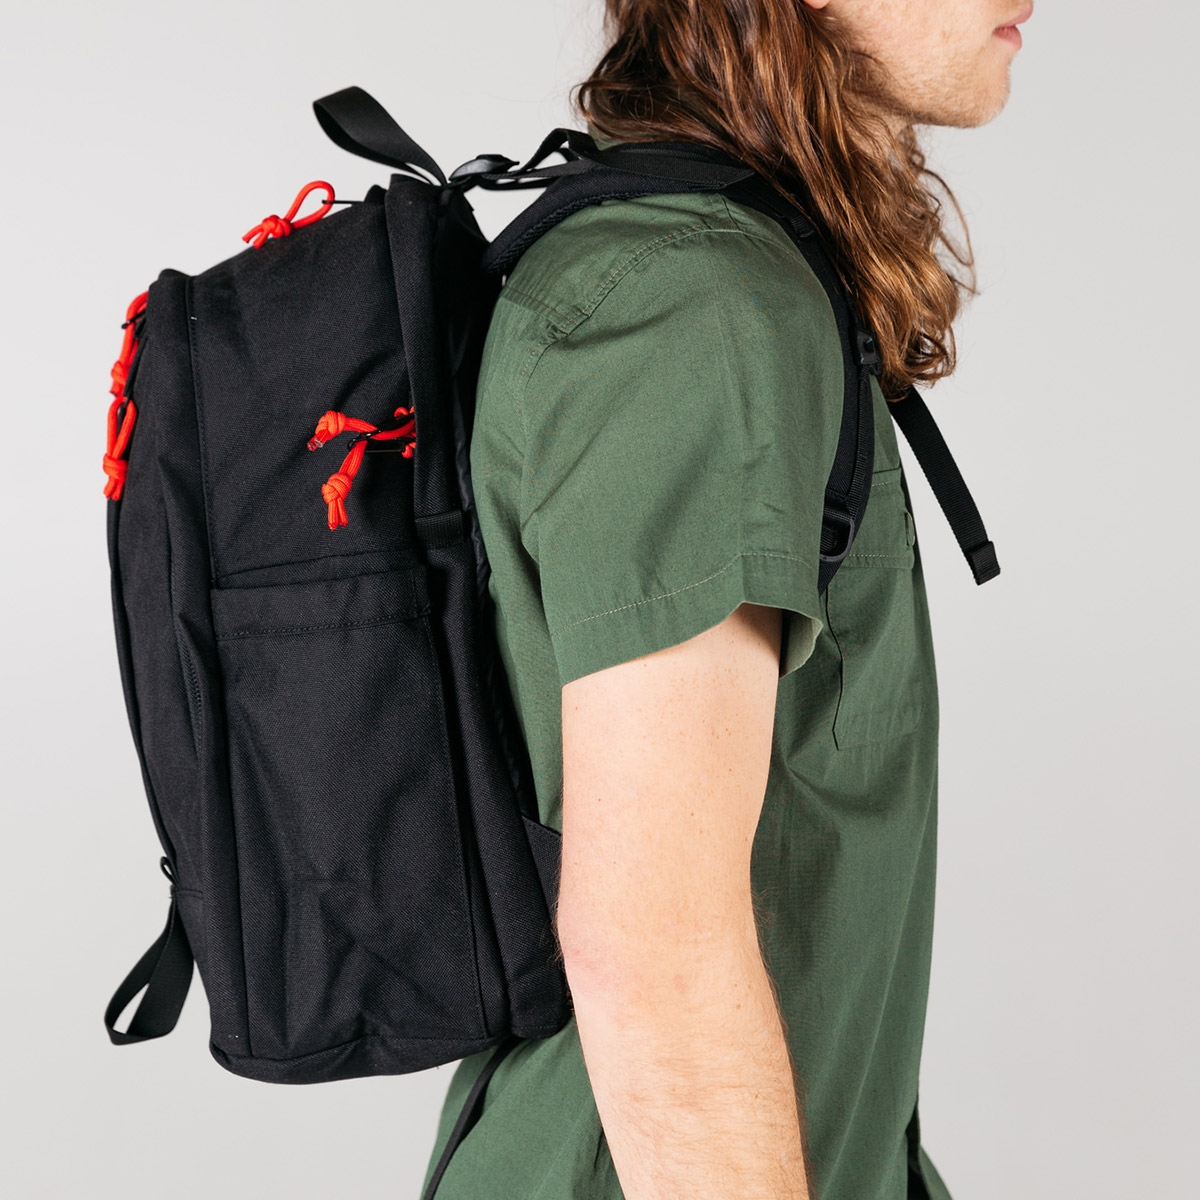 Topo Designs Core Pack Black, ideal backpack for daily use